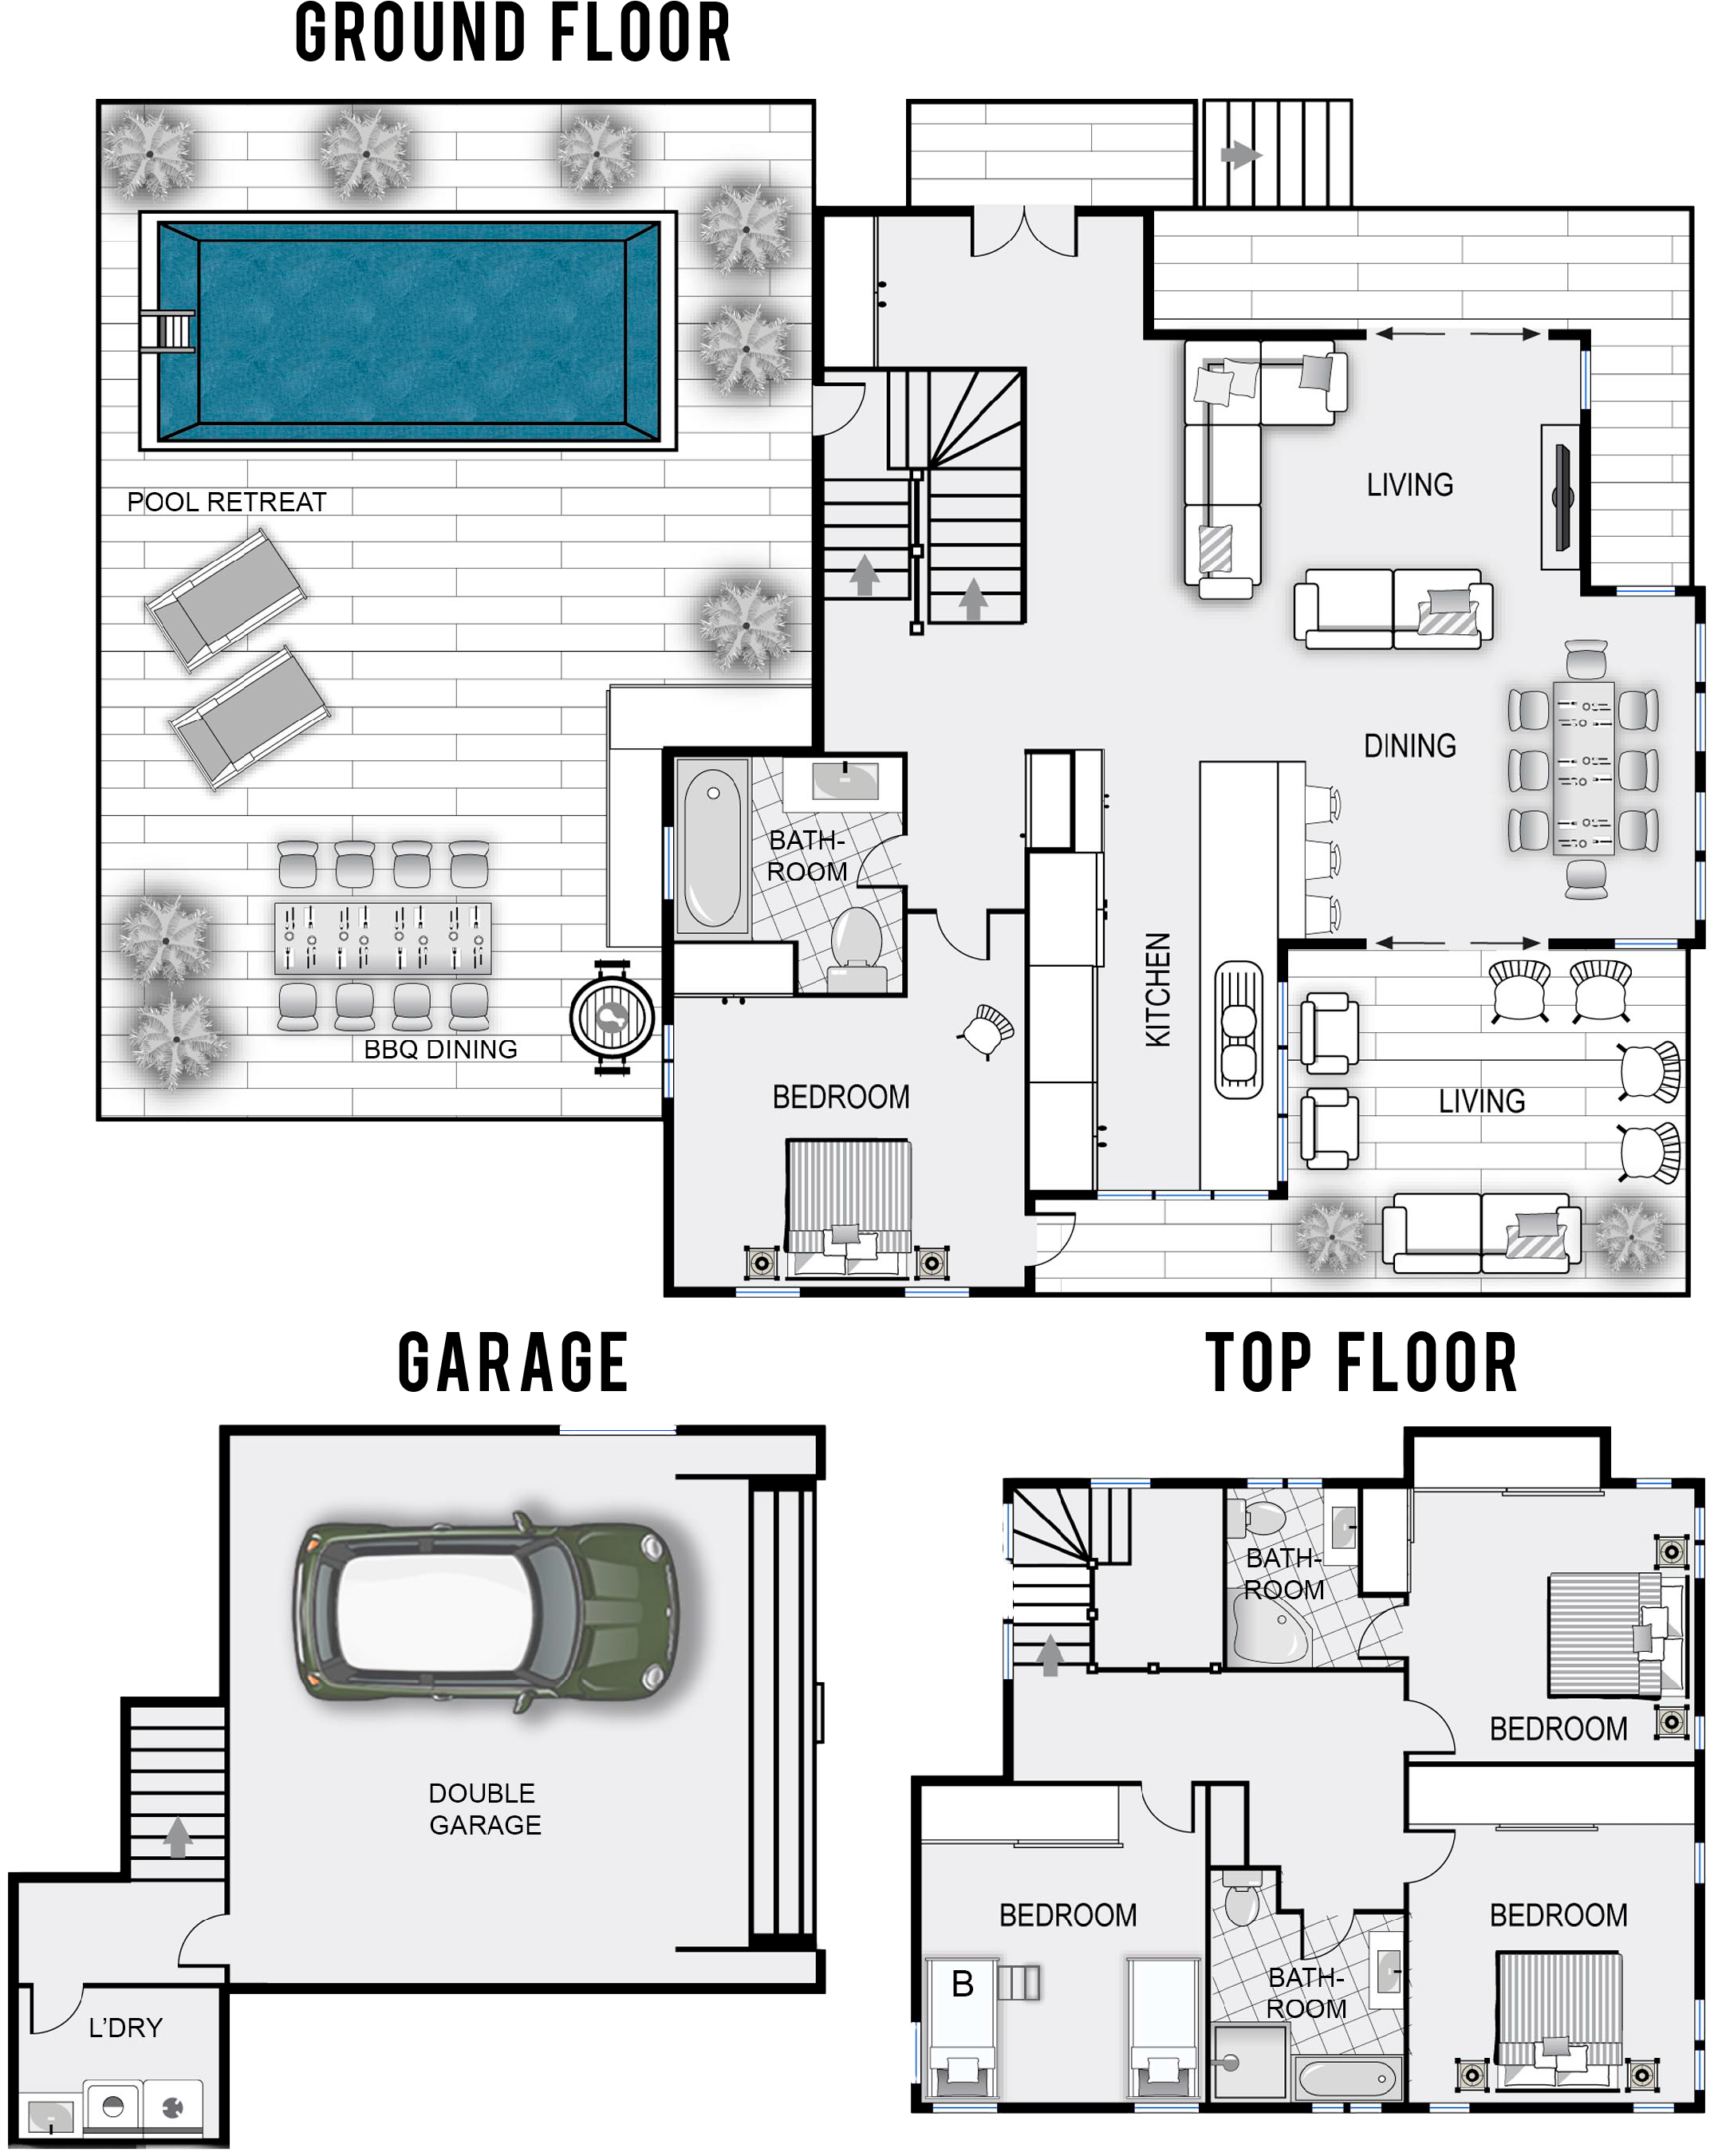 Byron Beach House Accommodation Rates Floor Plan Full Size Png Download Seekpng